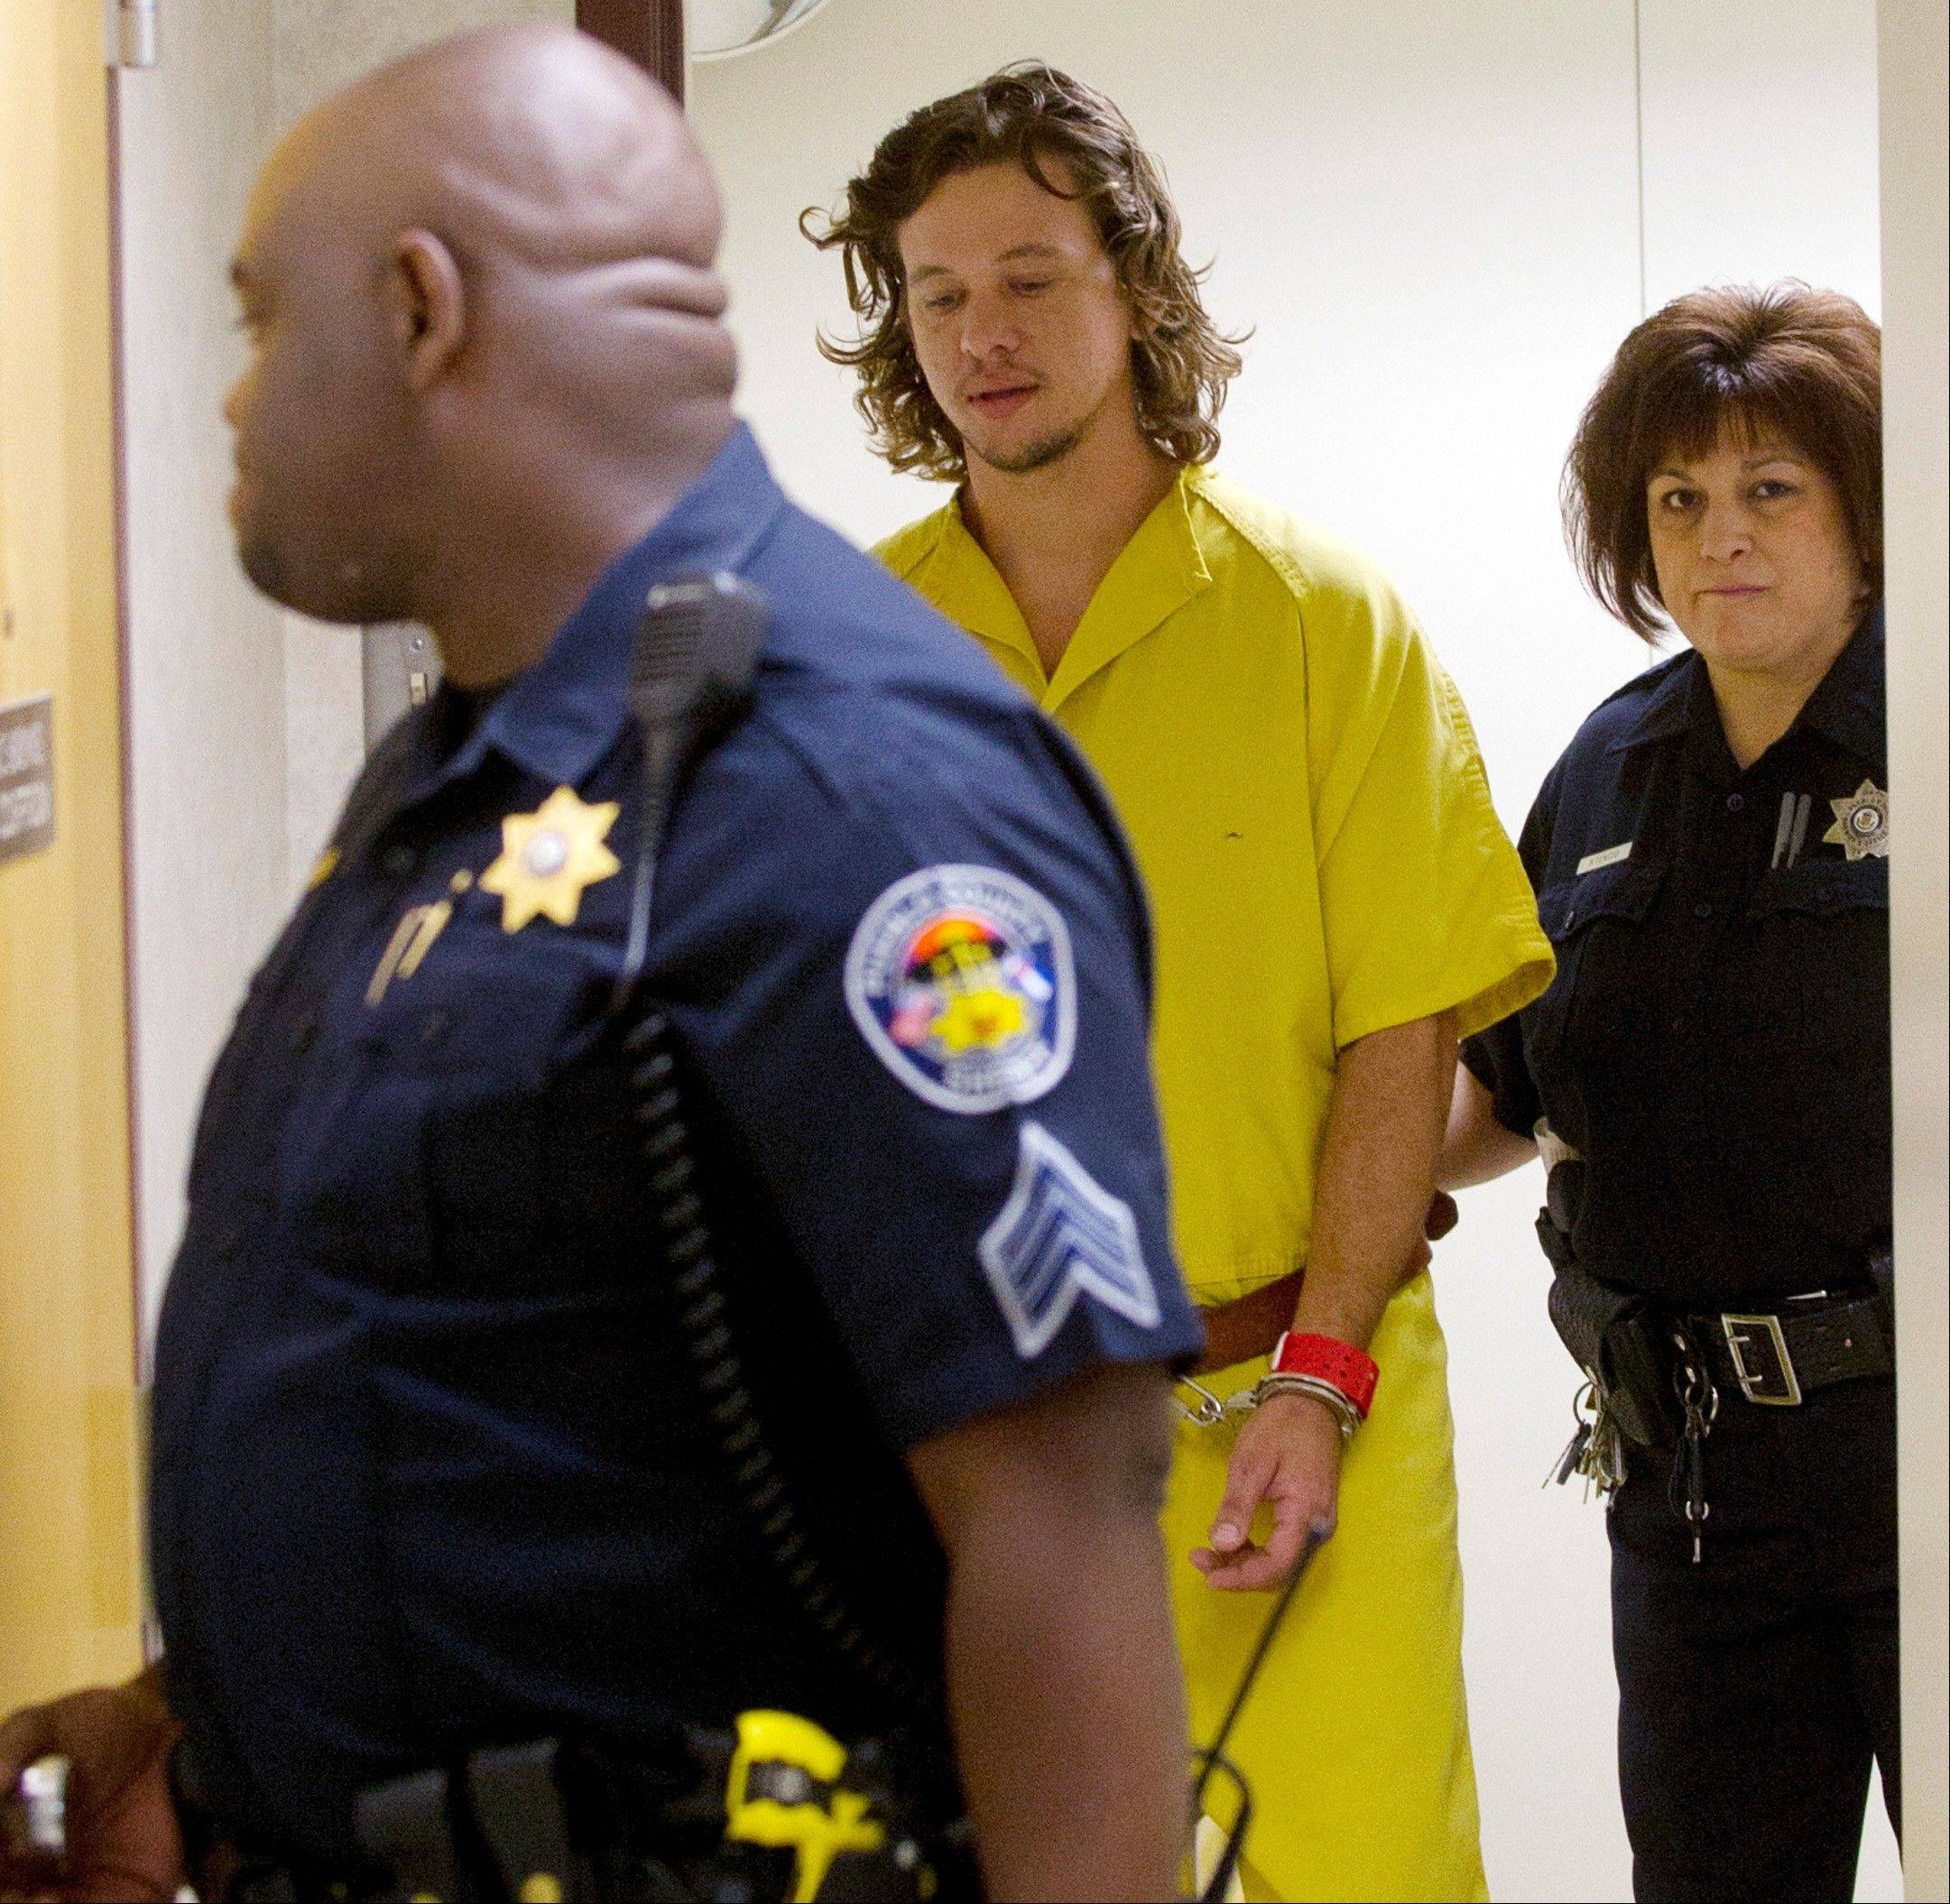 Dylan Dougherty-Stanley is escorted to court in Pueblo, Colo., on Monday. The filing of charges against the three fugitive siblings captured in Colorado has been delayed until next week.